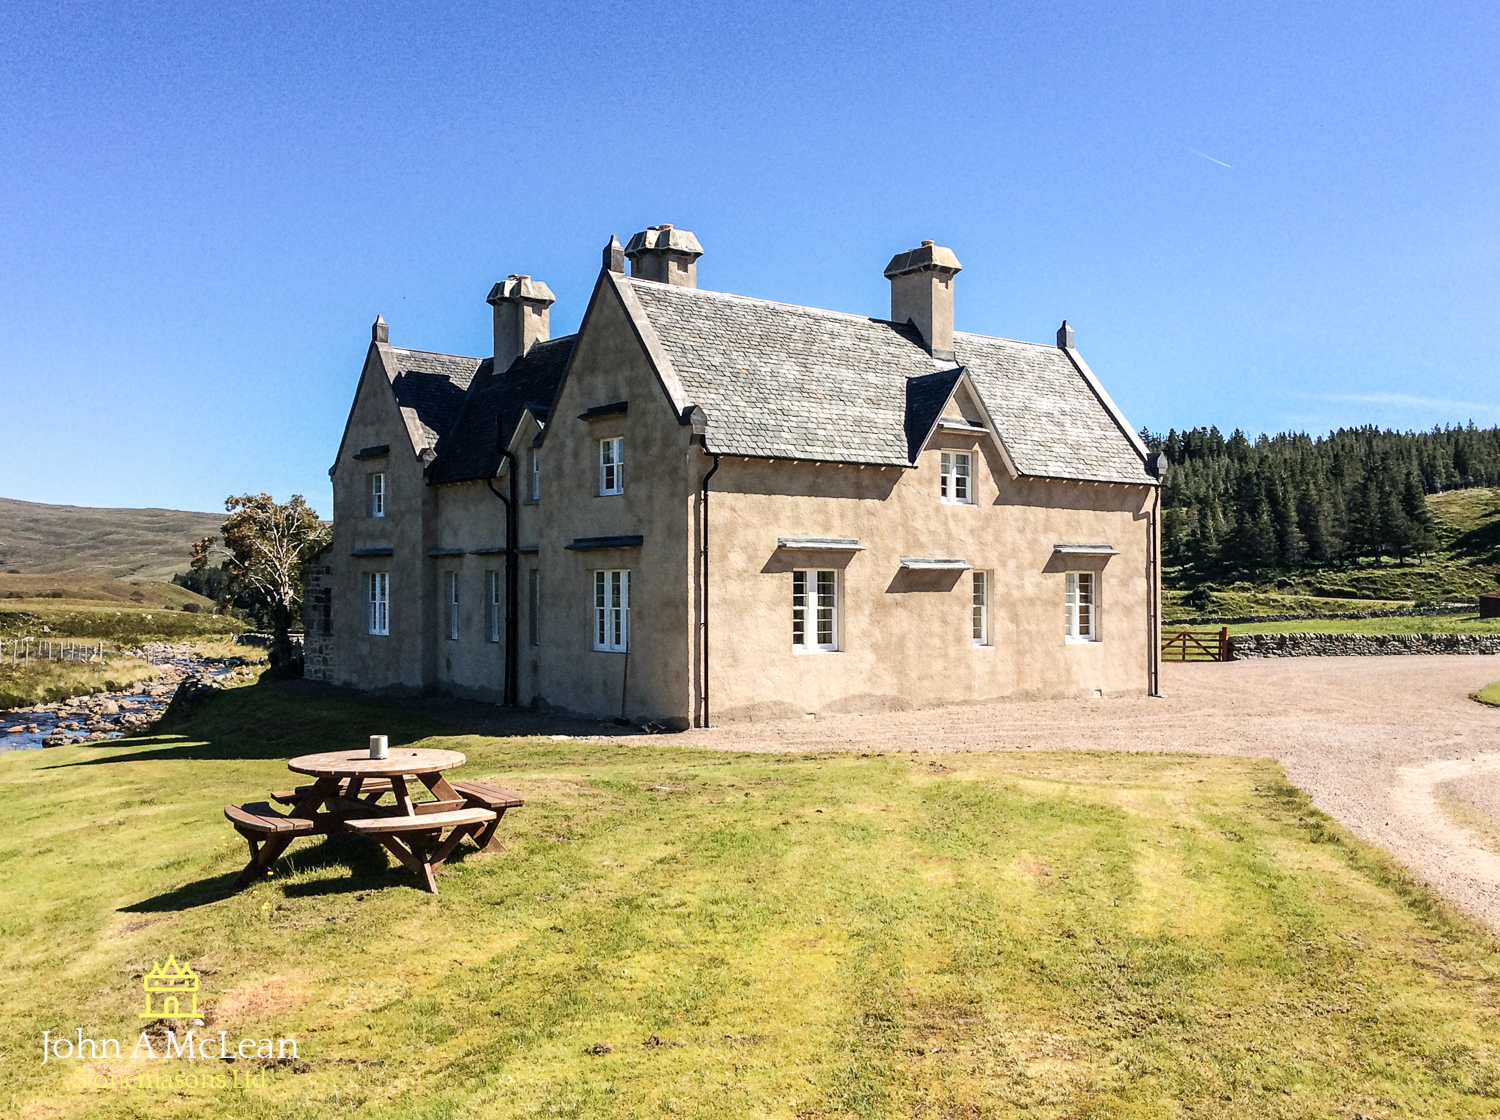 Gobernuisgach Lodge Altnaharra - limeworks & chimney replacement